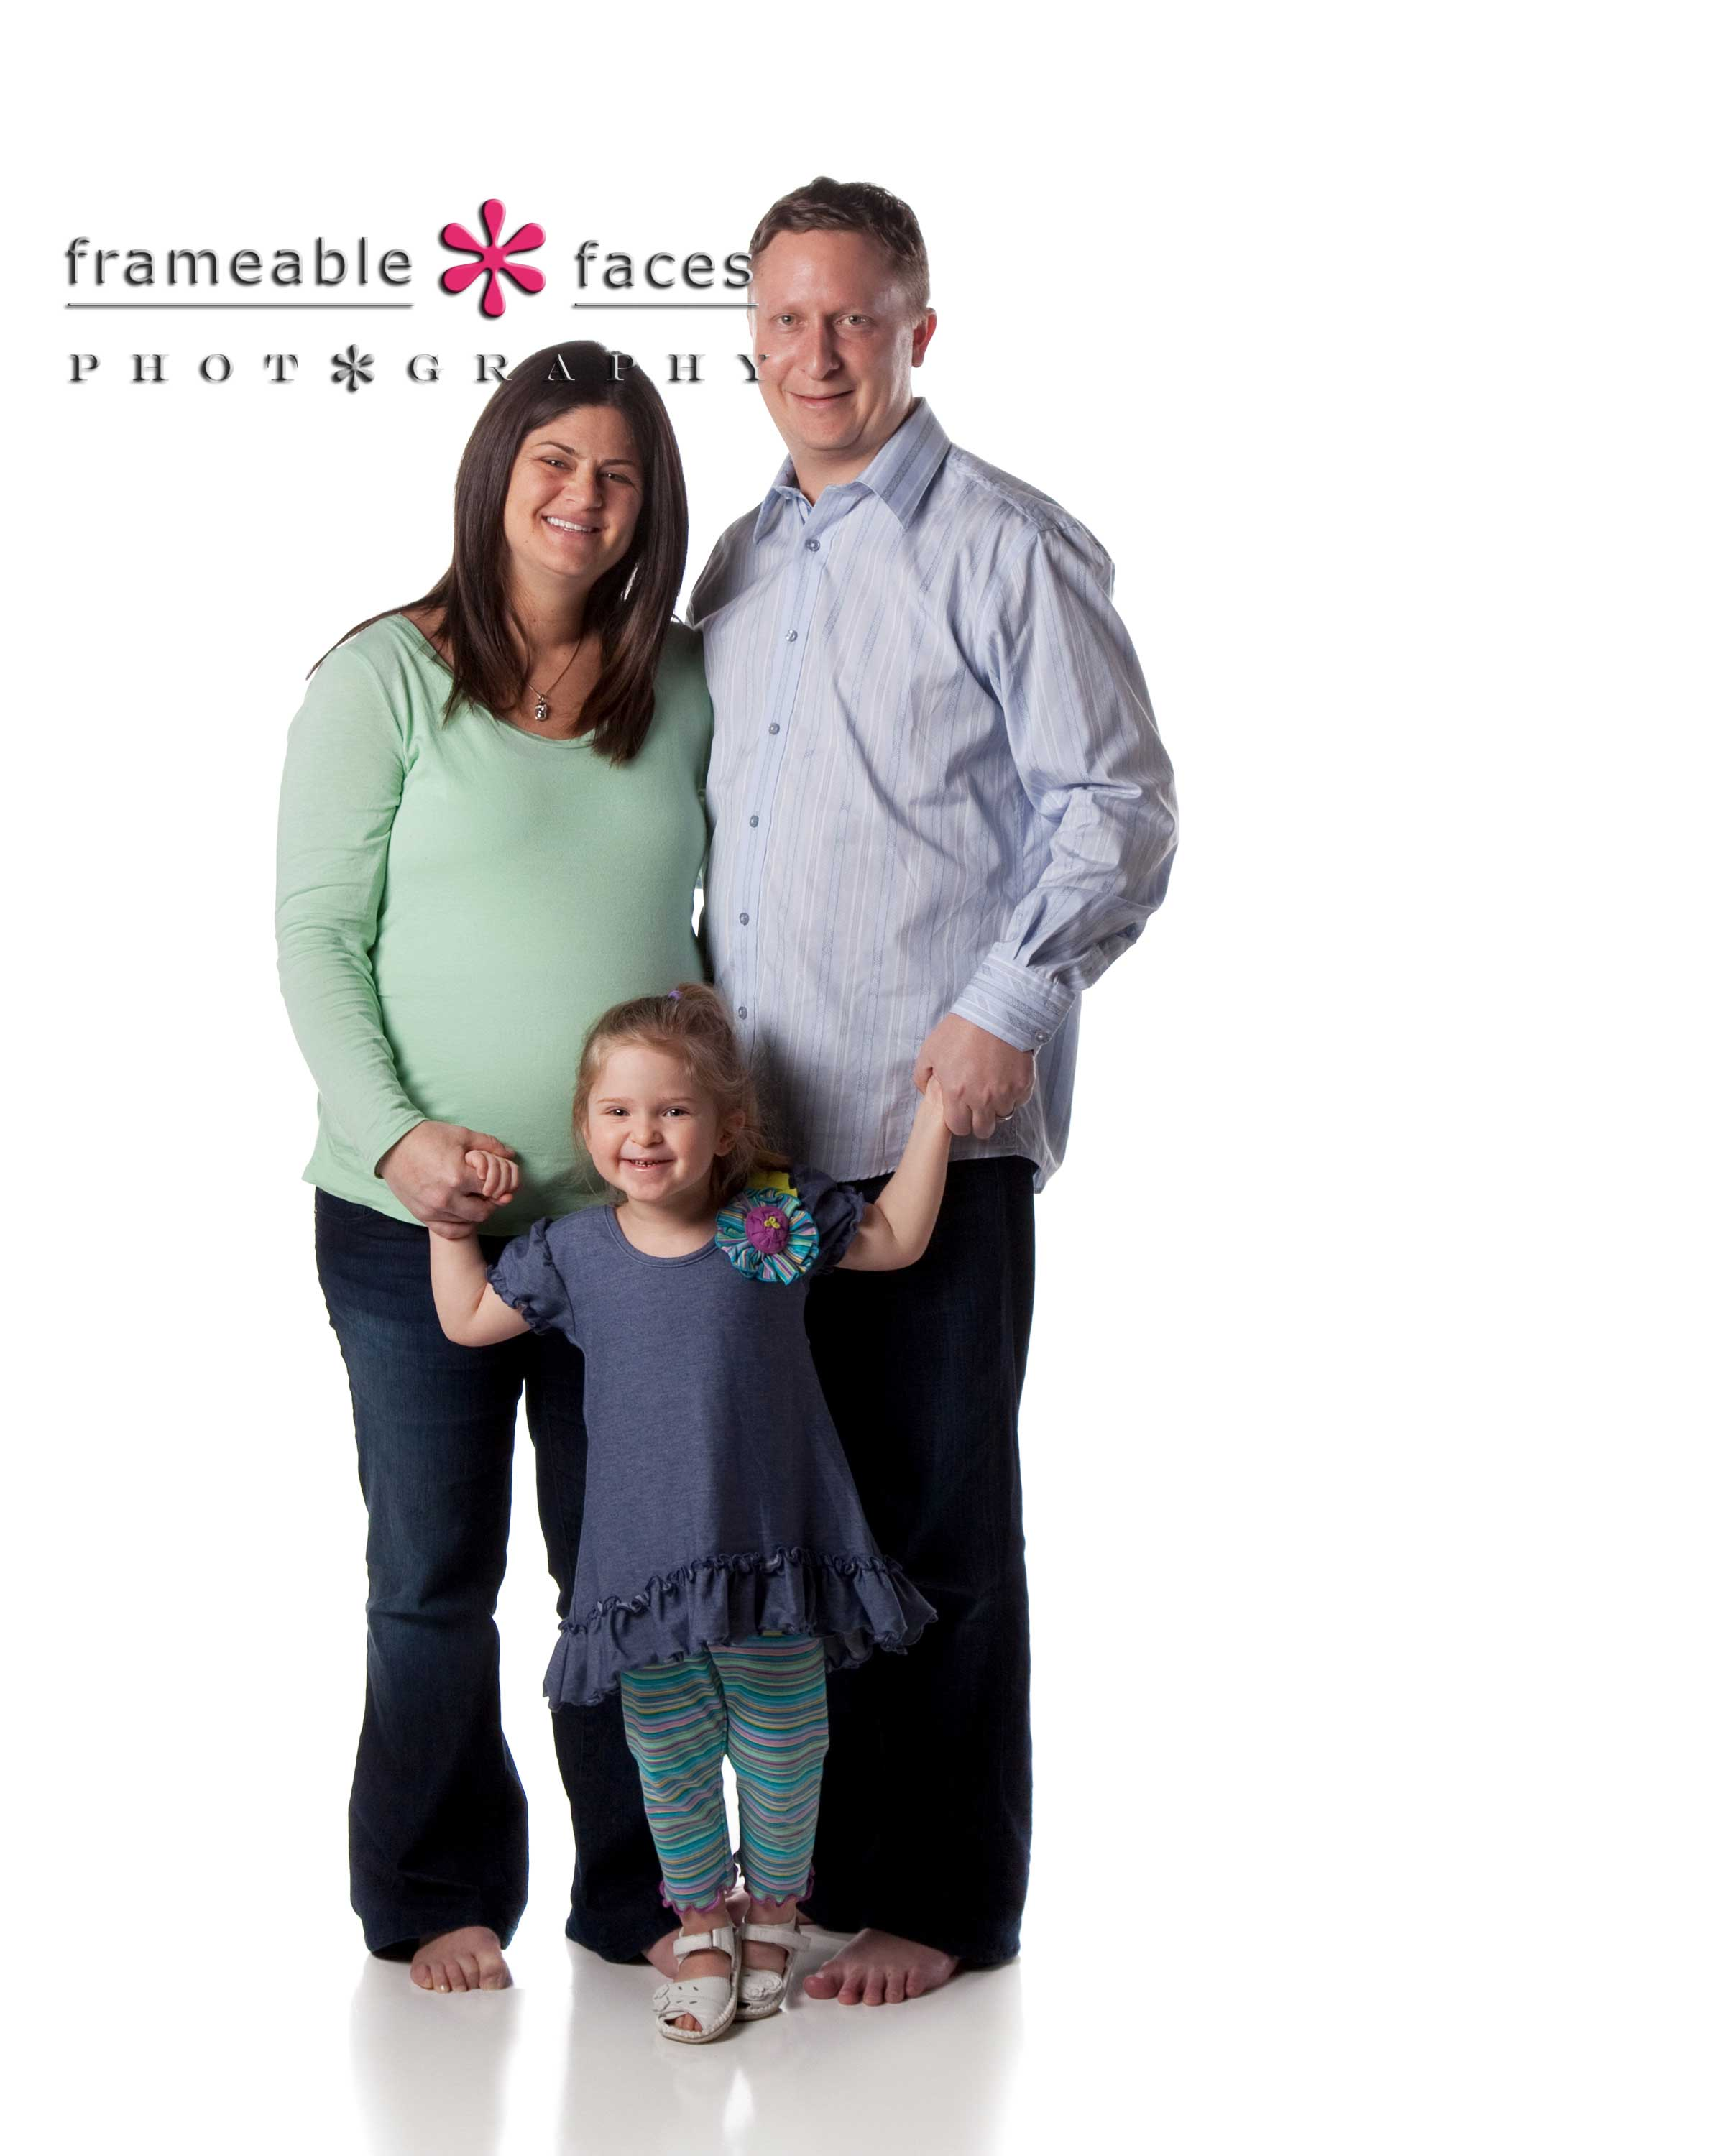 Frameable Faces Photography - Maternity Family Photo